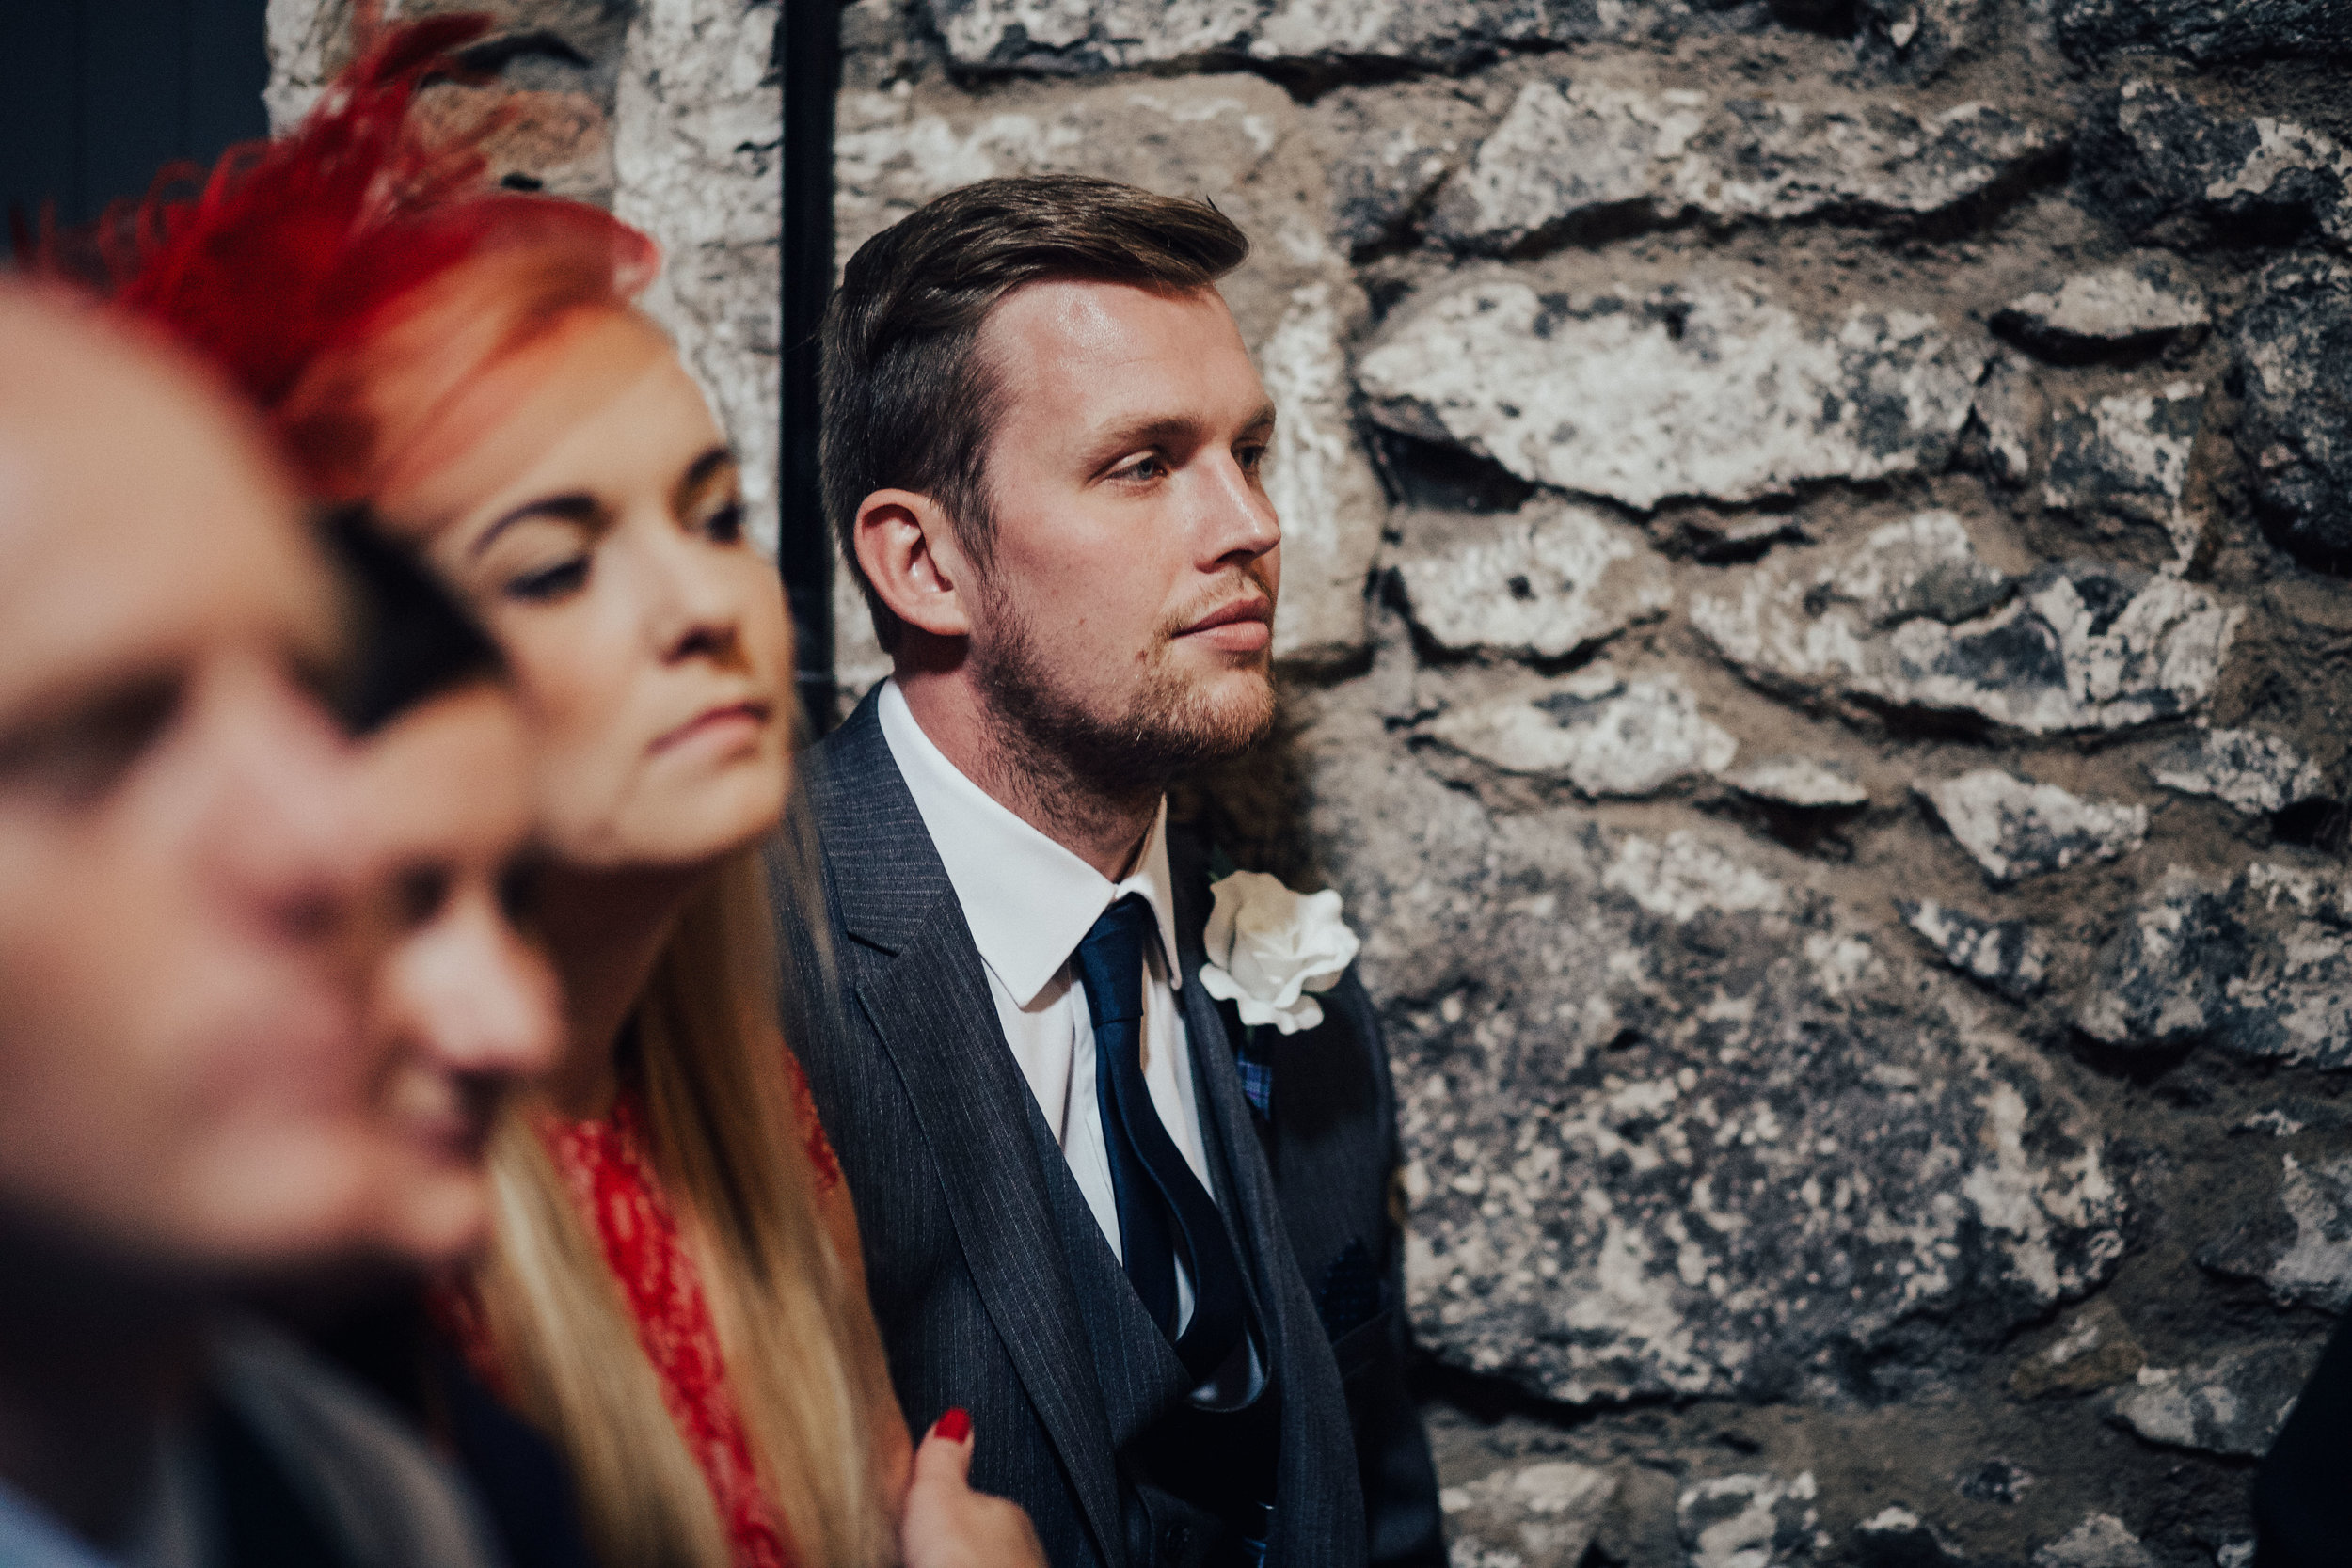 BYRE_AT_INCHYRA_WEDDING_PHOTOGRAPHER_PJ_PHILLIPS_PHOTOGRAPHY_KAYLEIGH_ANDREW_86.jpg